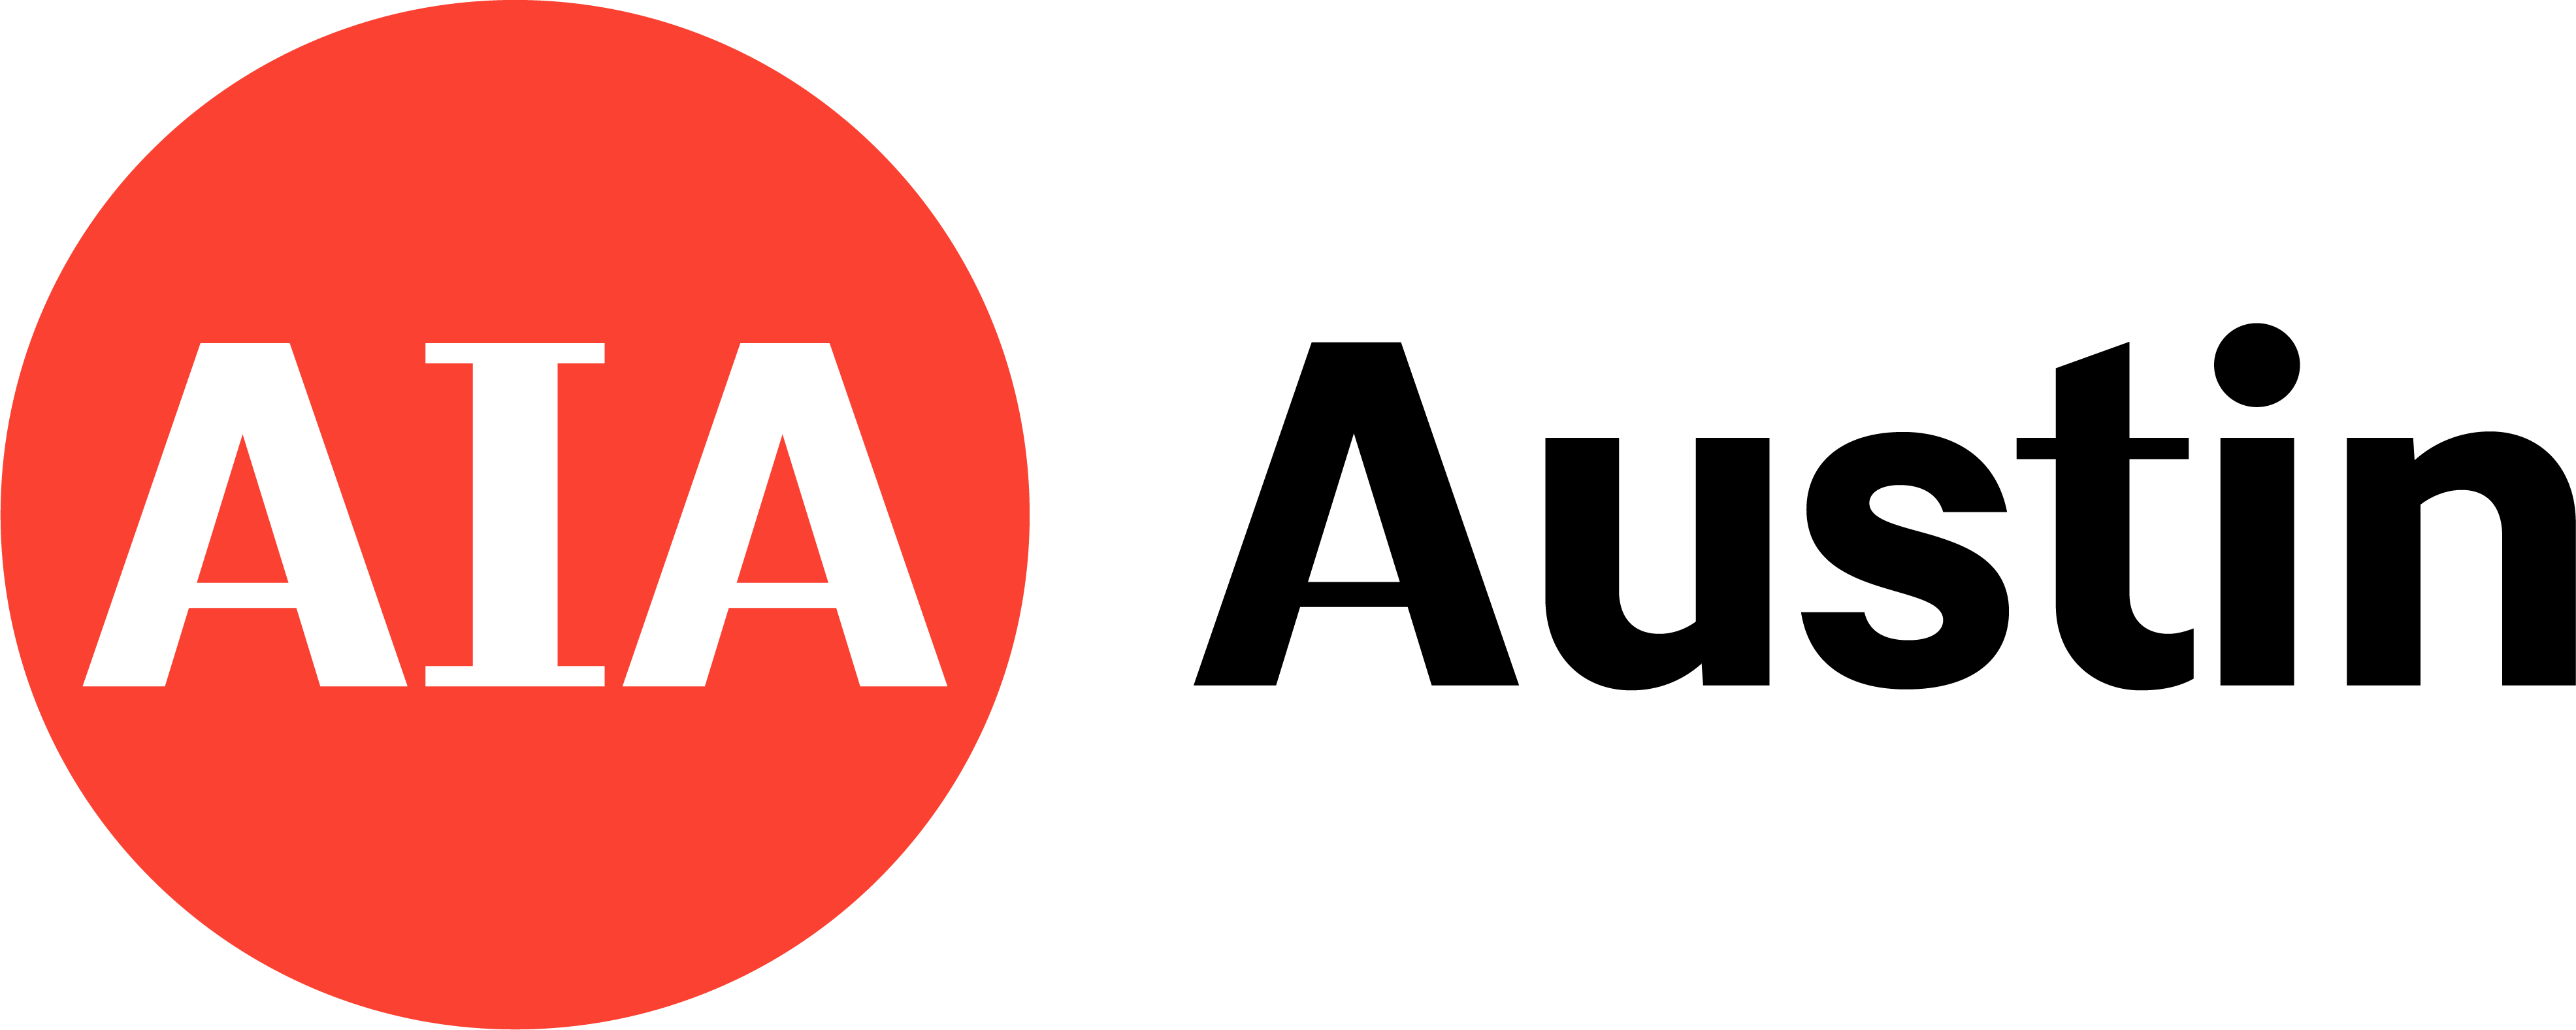 logo for AIA Austin, red circle with white letters AIA inside, and the word Austin in black